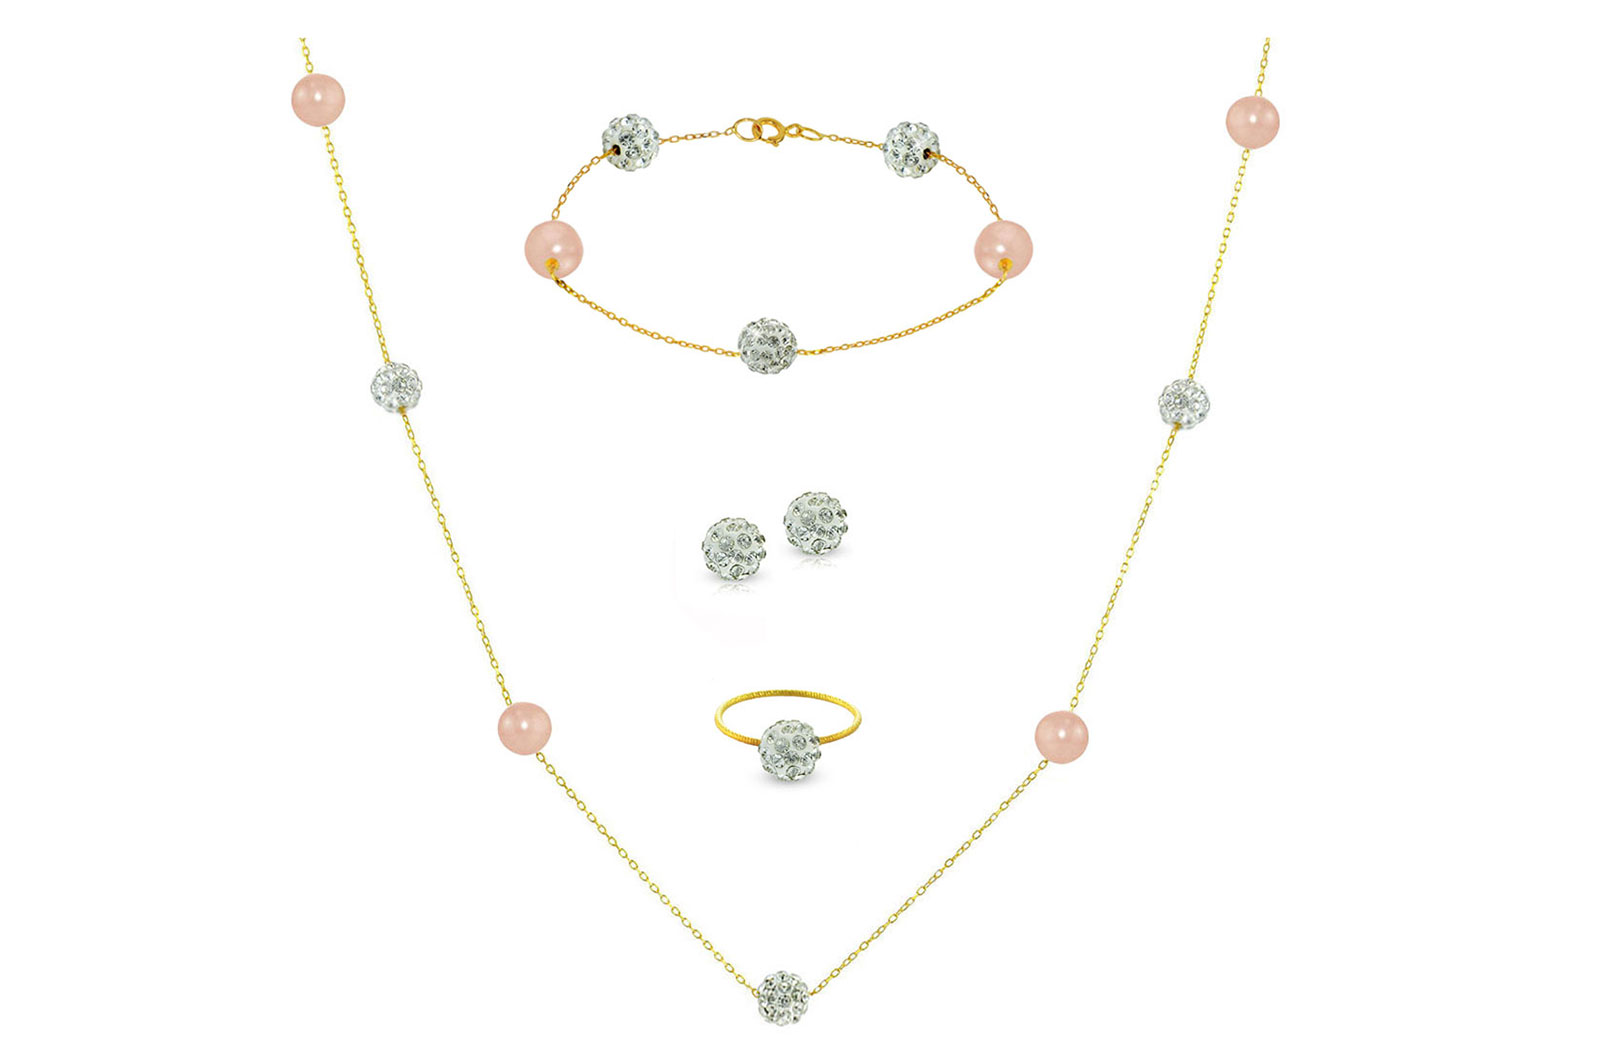 Vera Perla 18K Solid Gold Gradual Built-in 5-6mm Crystal Ball and Pink Pearls Jewelry Set - 4 pcs.